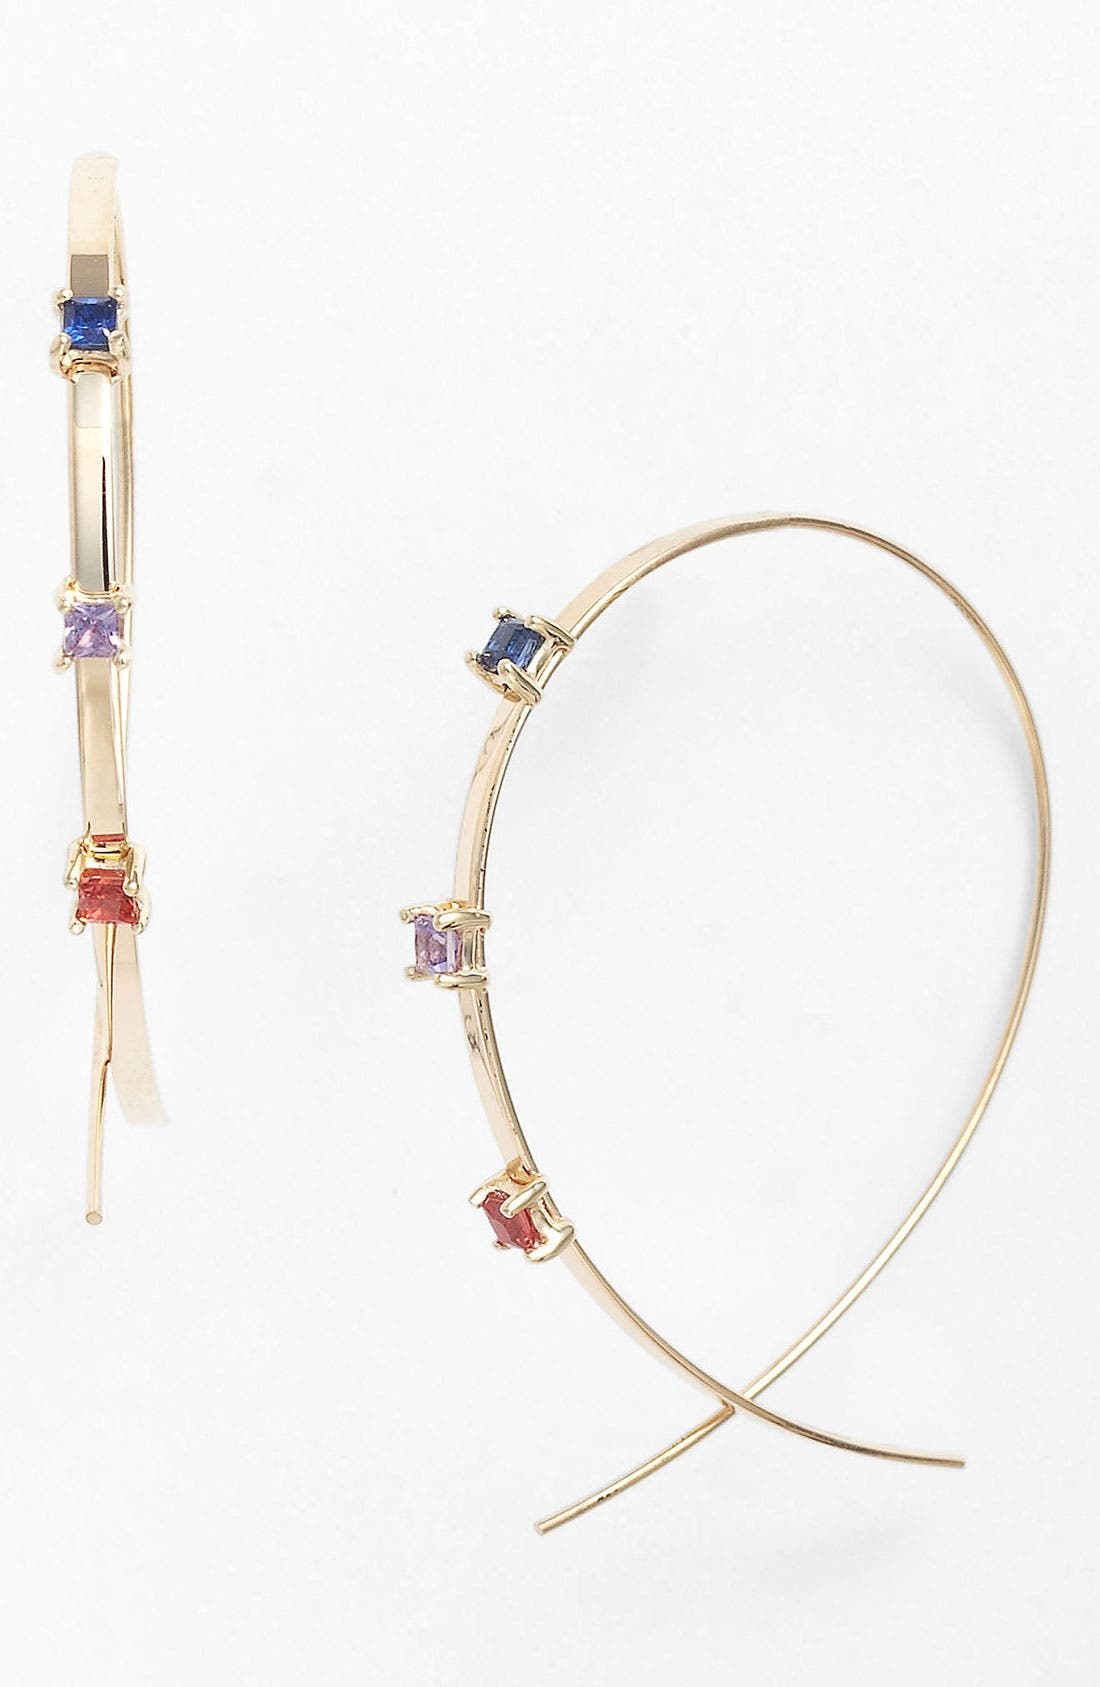 Main Image - Lana Jewelry 'Small Ombré Upside Down' Hoop Earrings